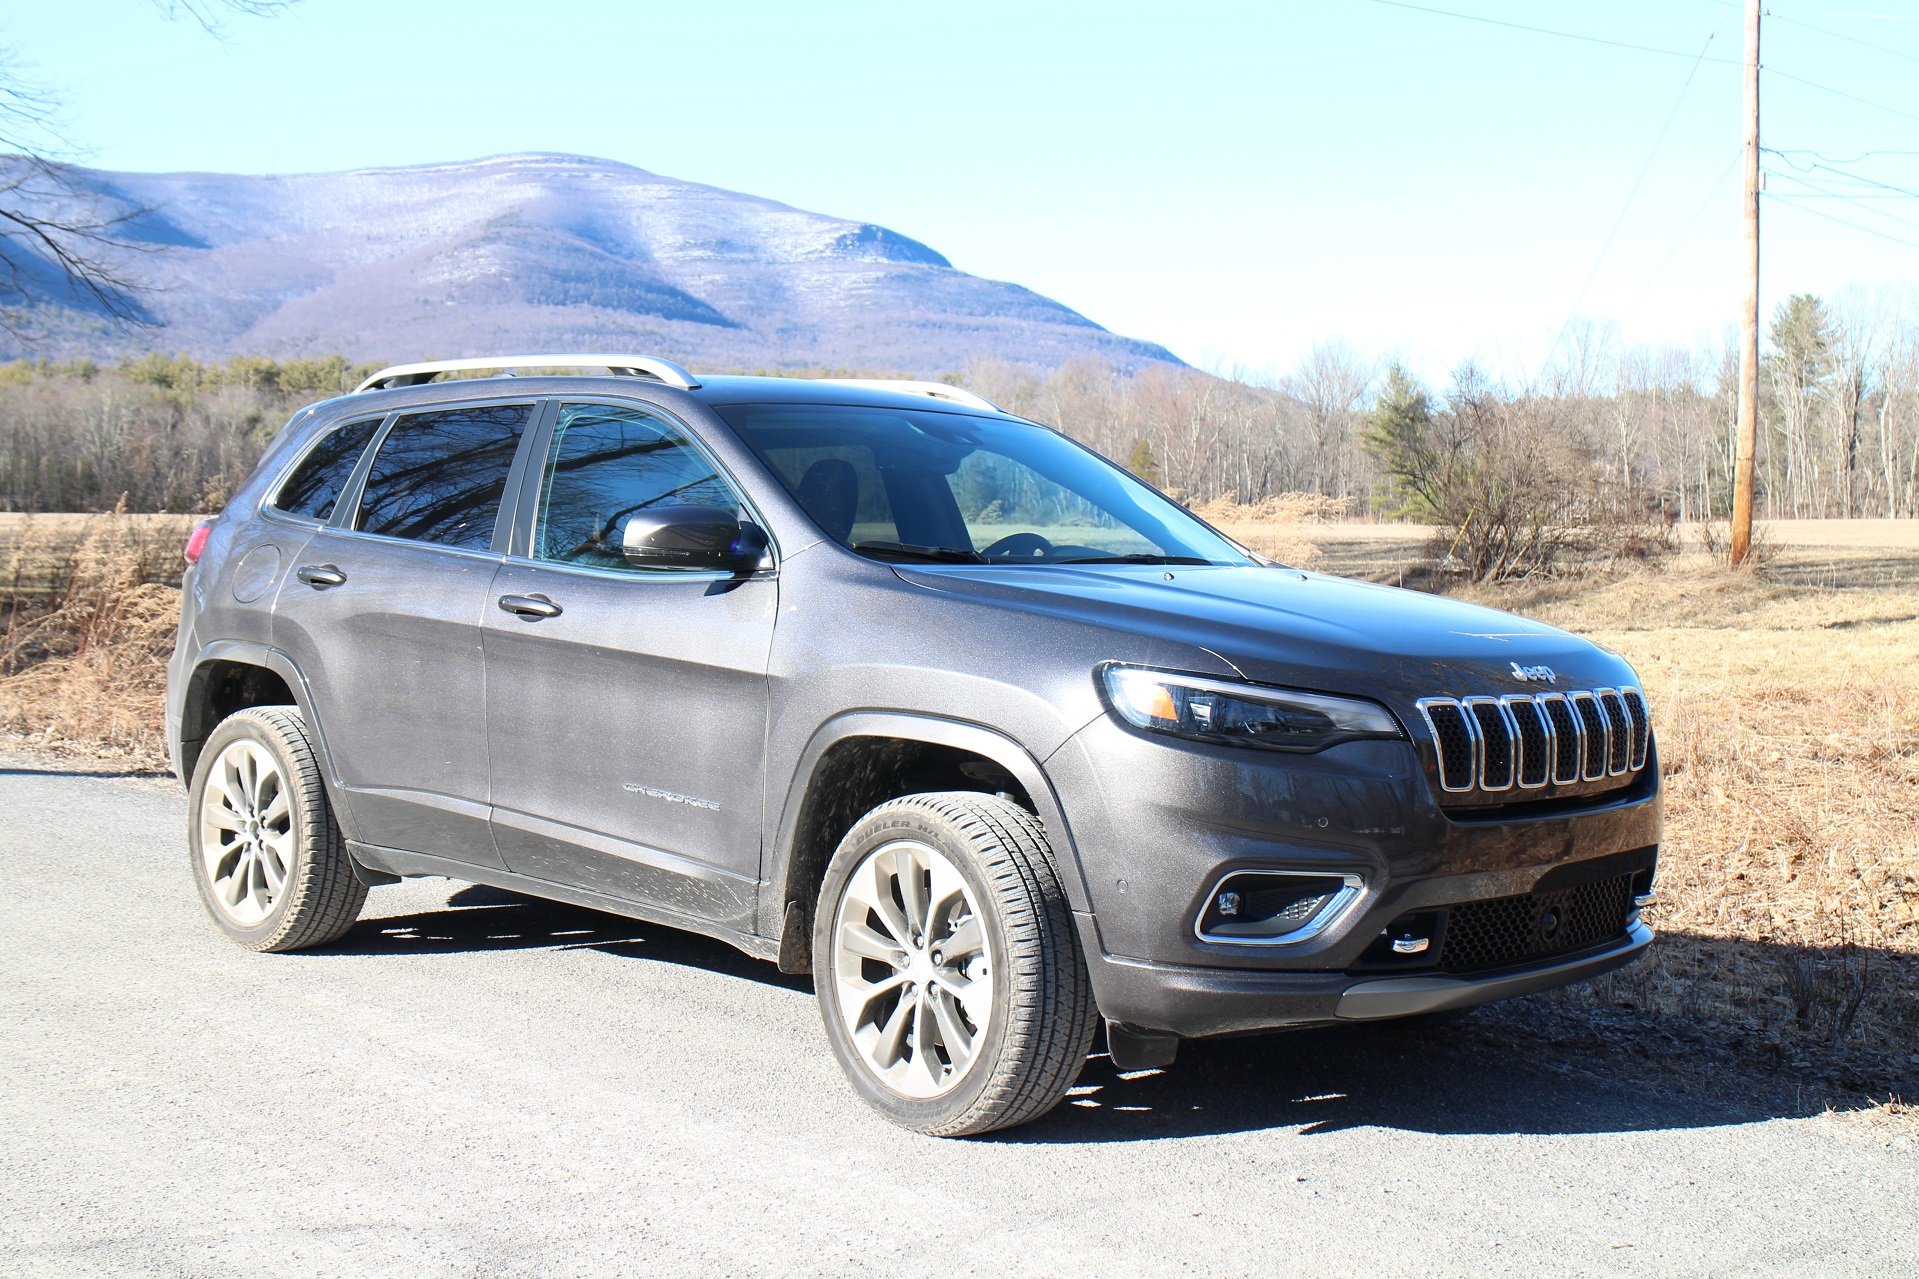 2019 Jeep Cherokee gas mileage review